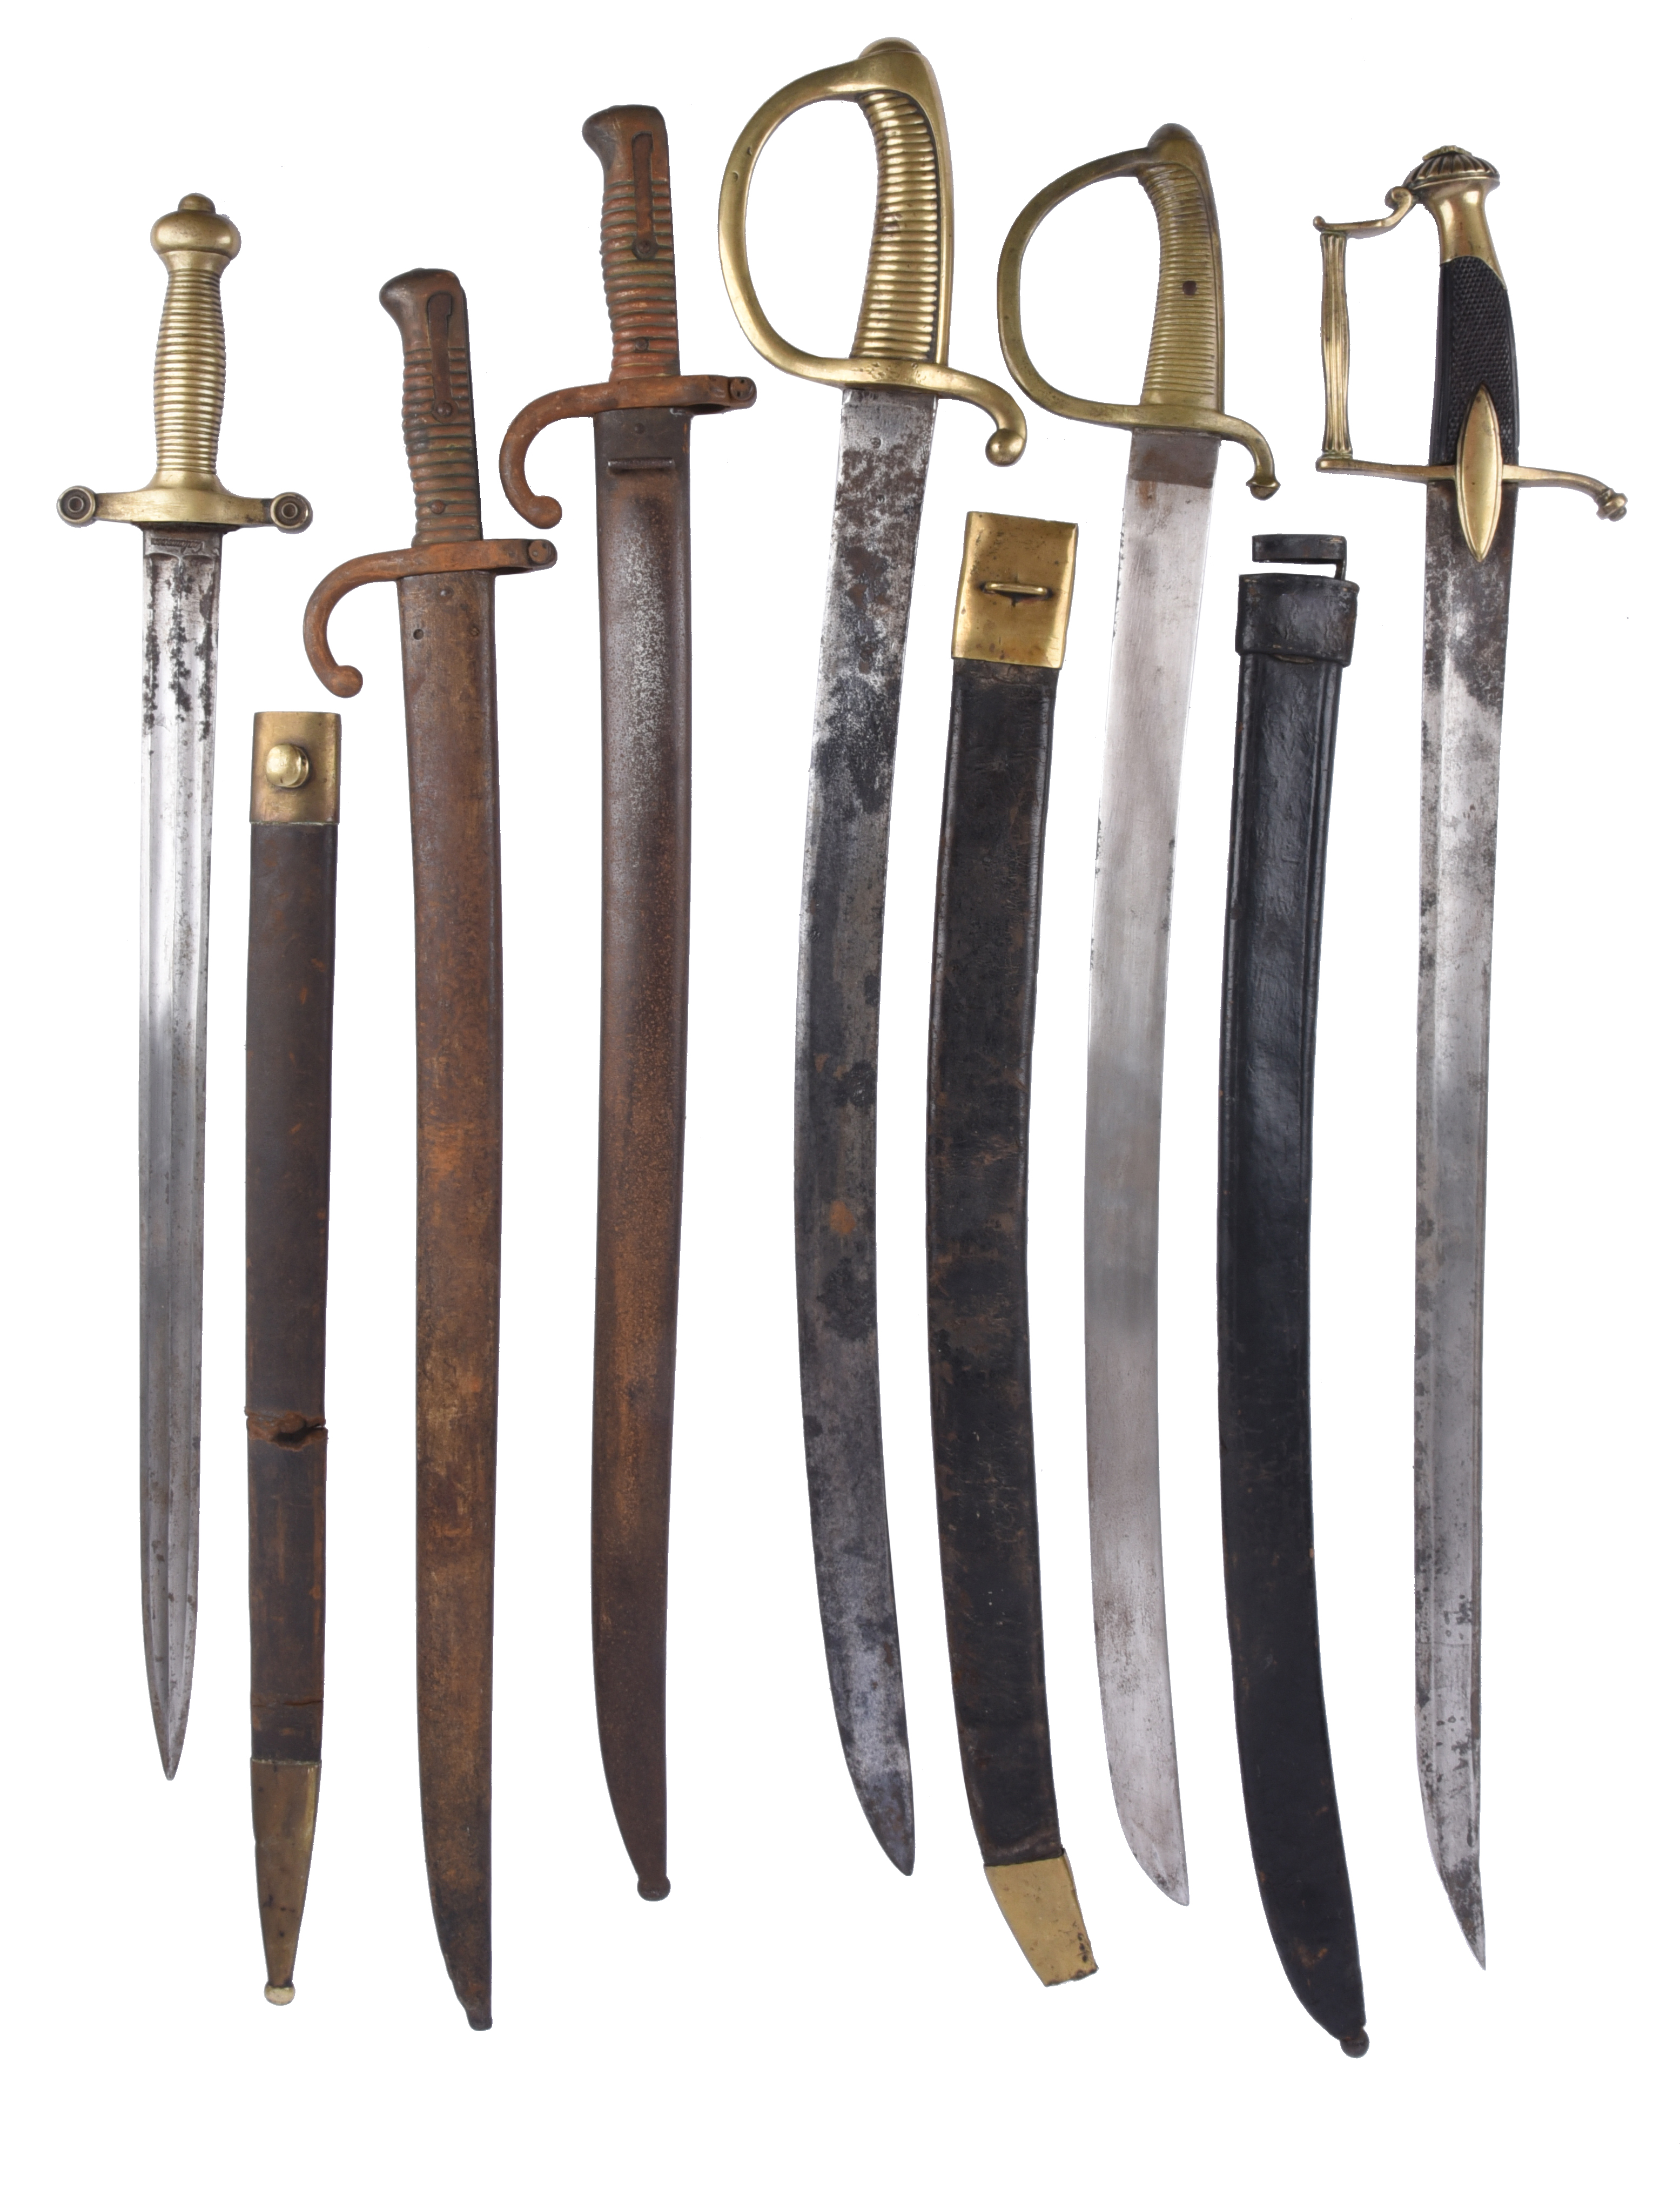 Six 19th century continental military edged weapons: a French cavalry officer's sword with cut-